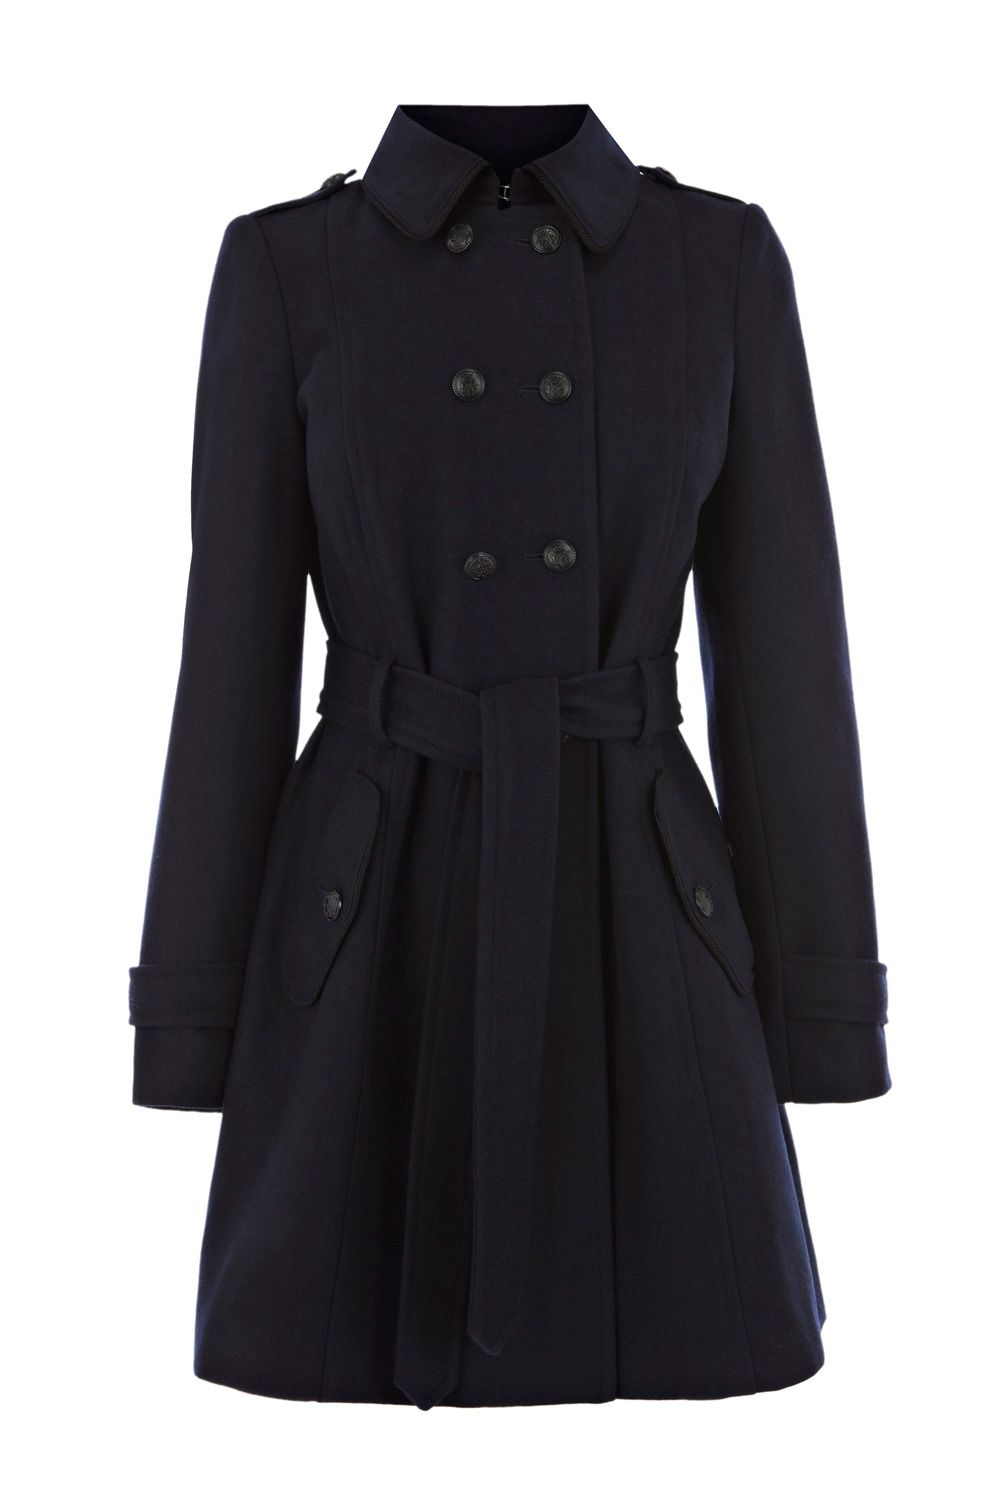 Oasis Military Pleat Back Coat In Blue Navy Lyst